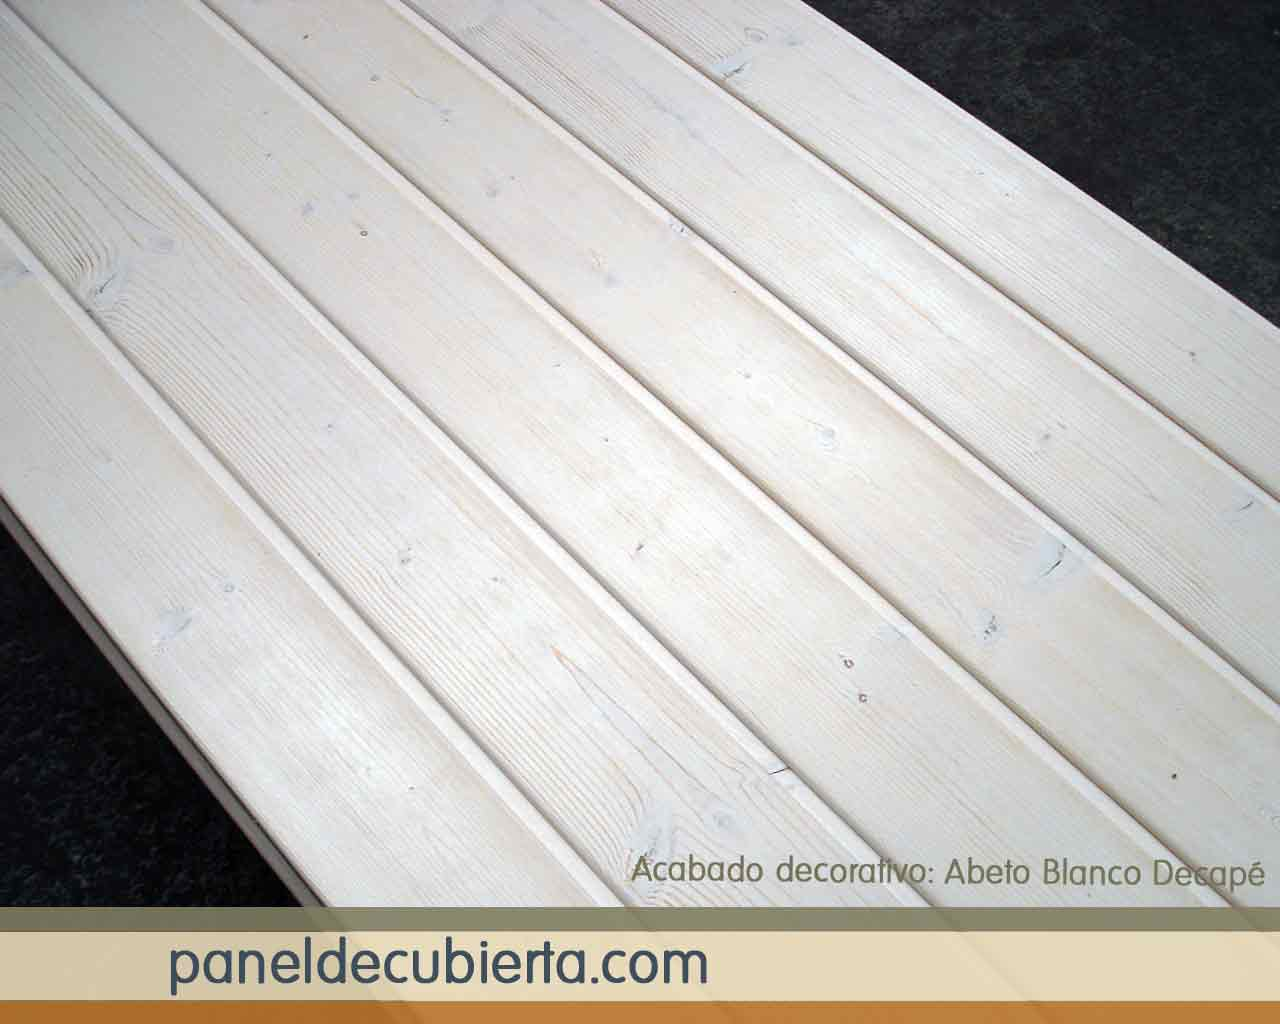 Panel de madera acabado decorativo abeto blanco decapé.